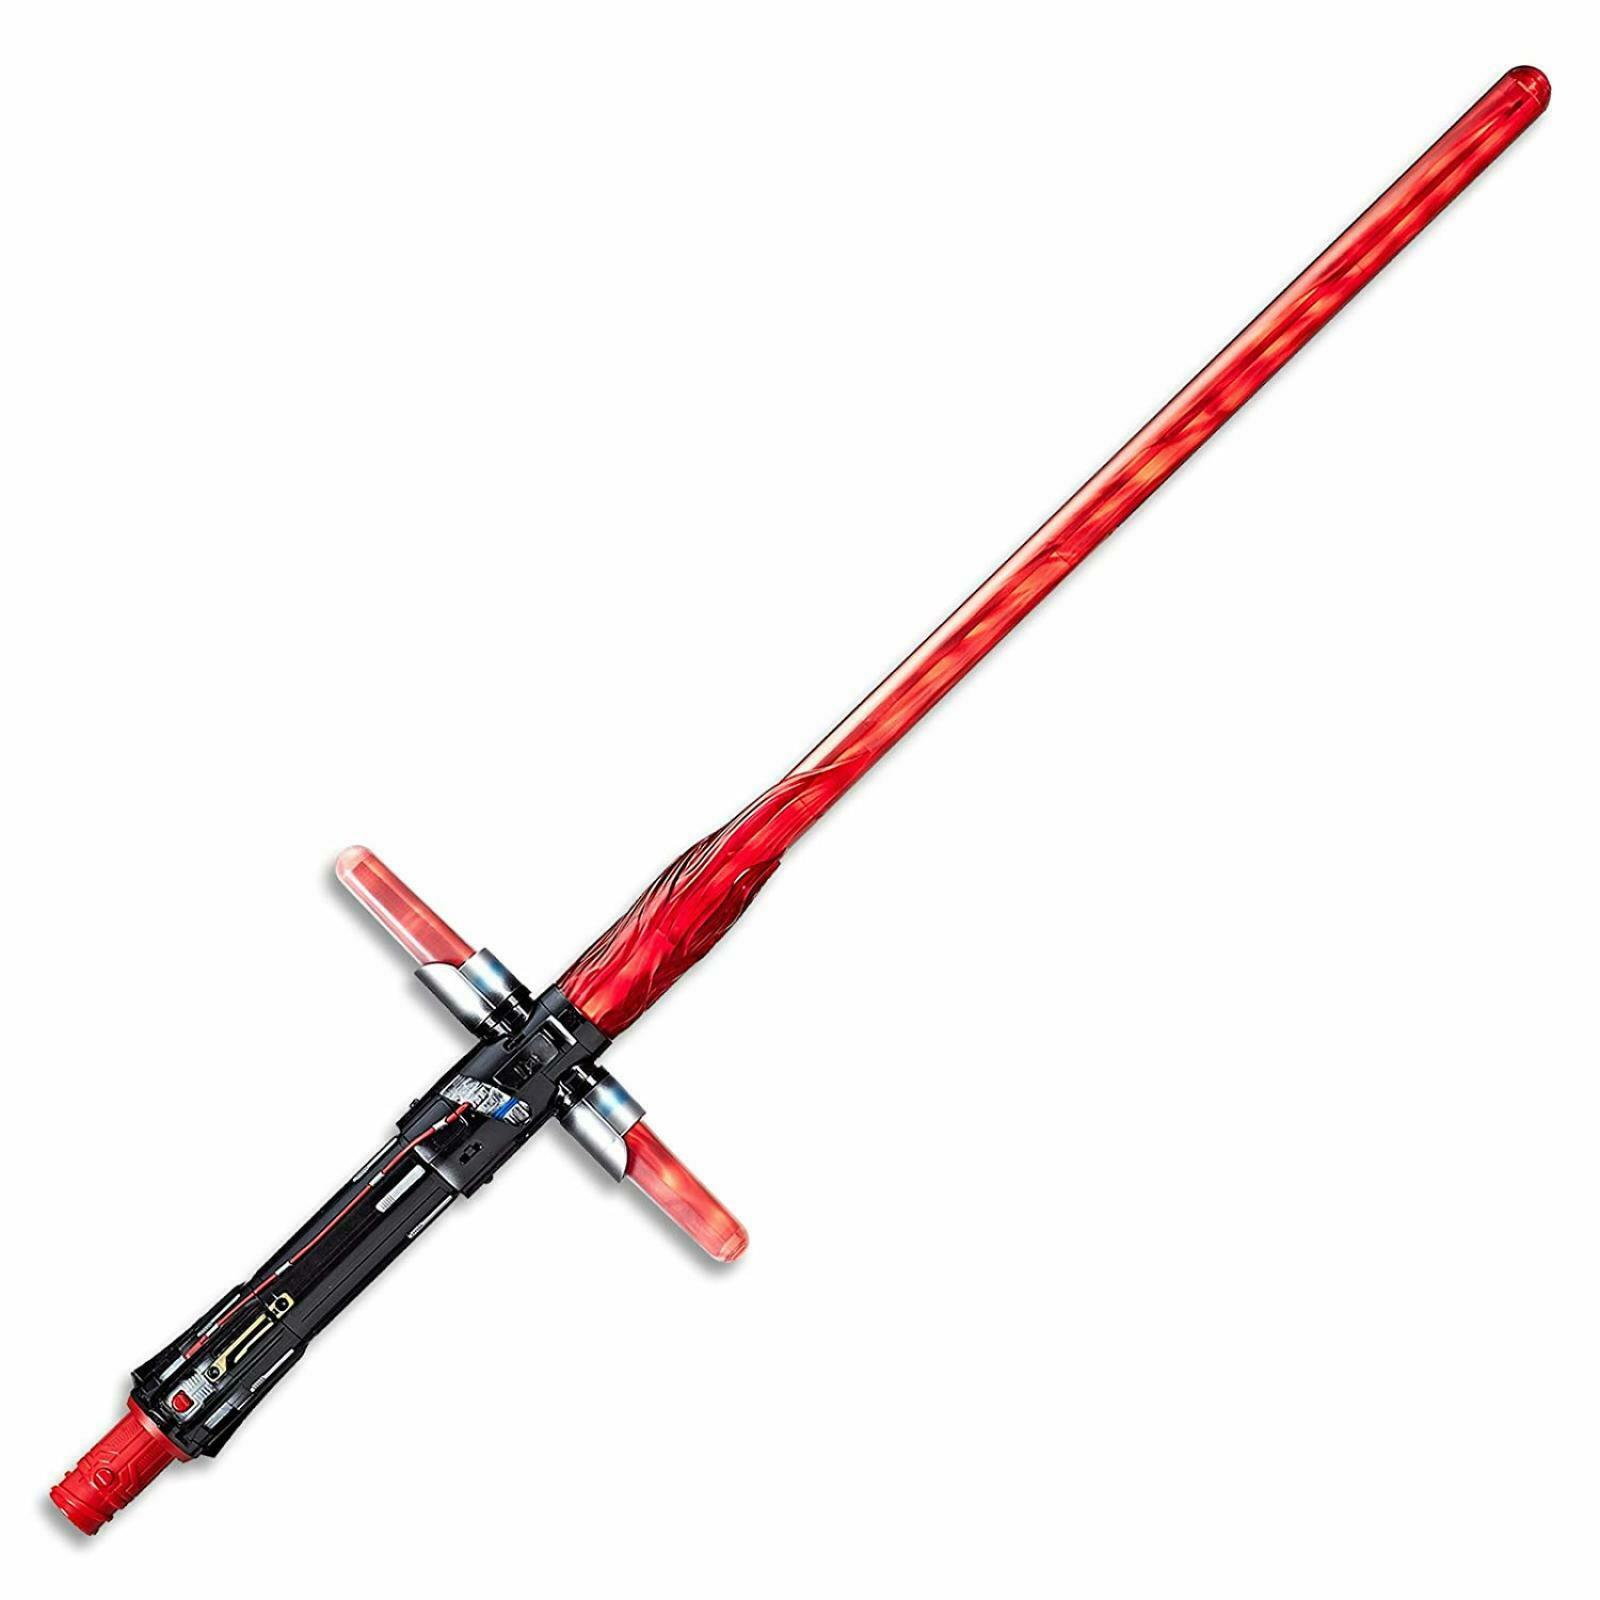 Star Wars-The Last Jedi - Kylo Ren Deluxe Lightsaber with lights & sound effects